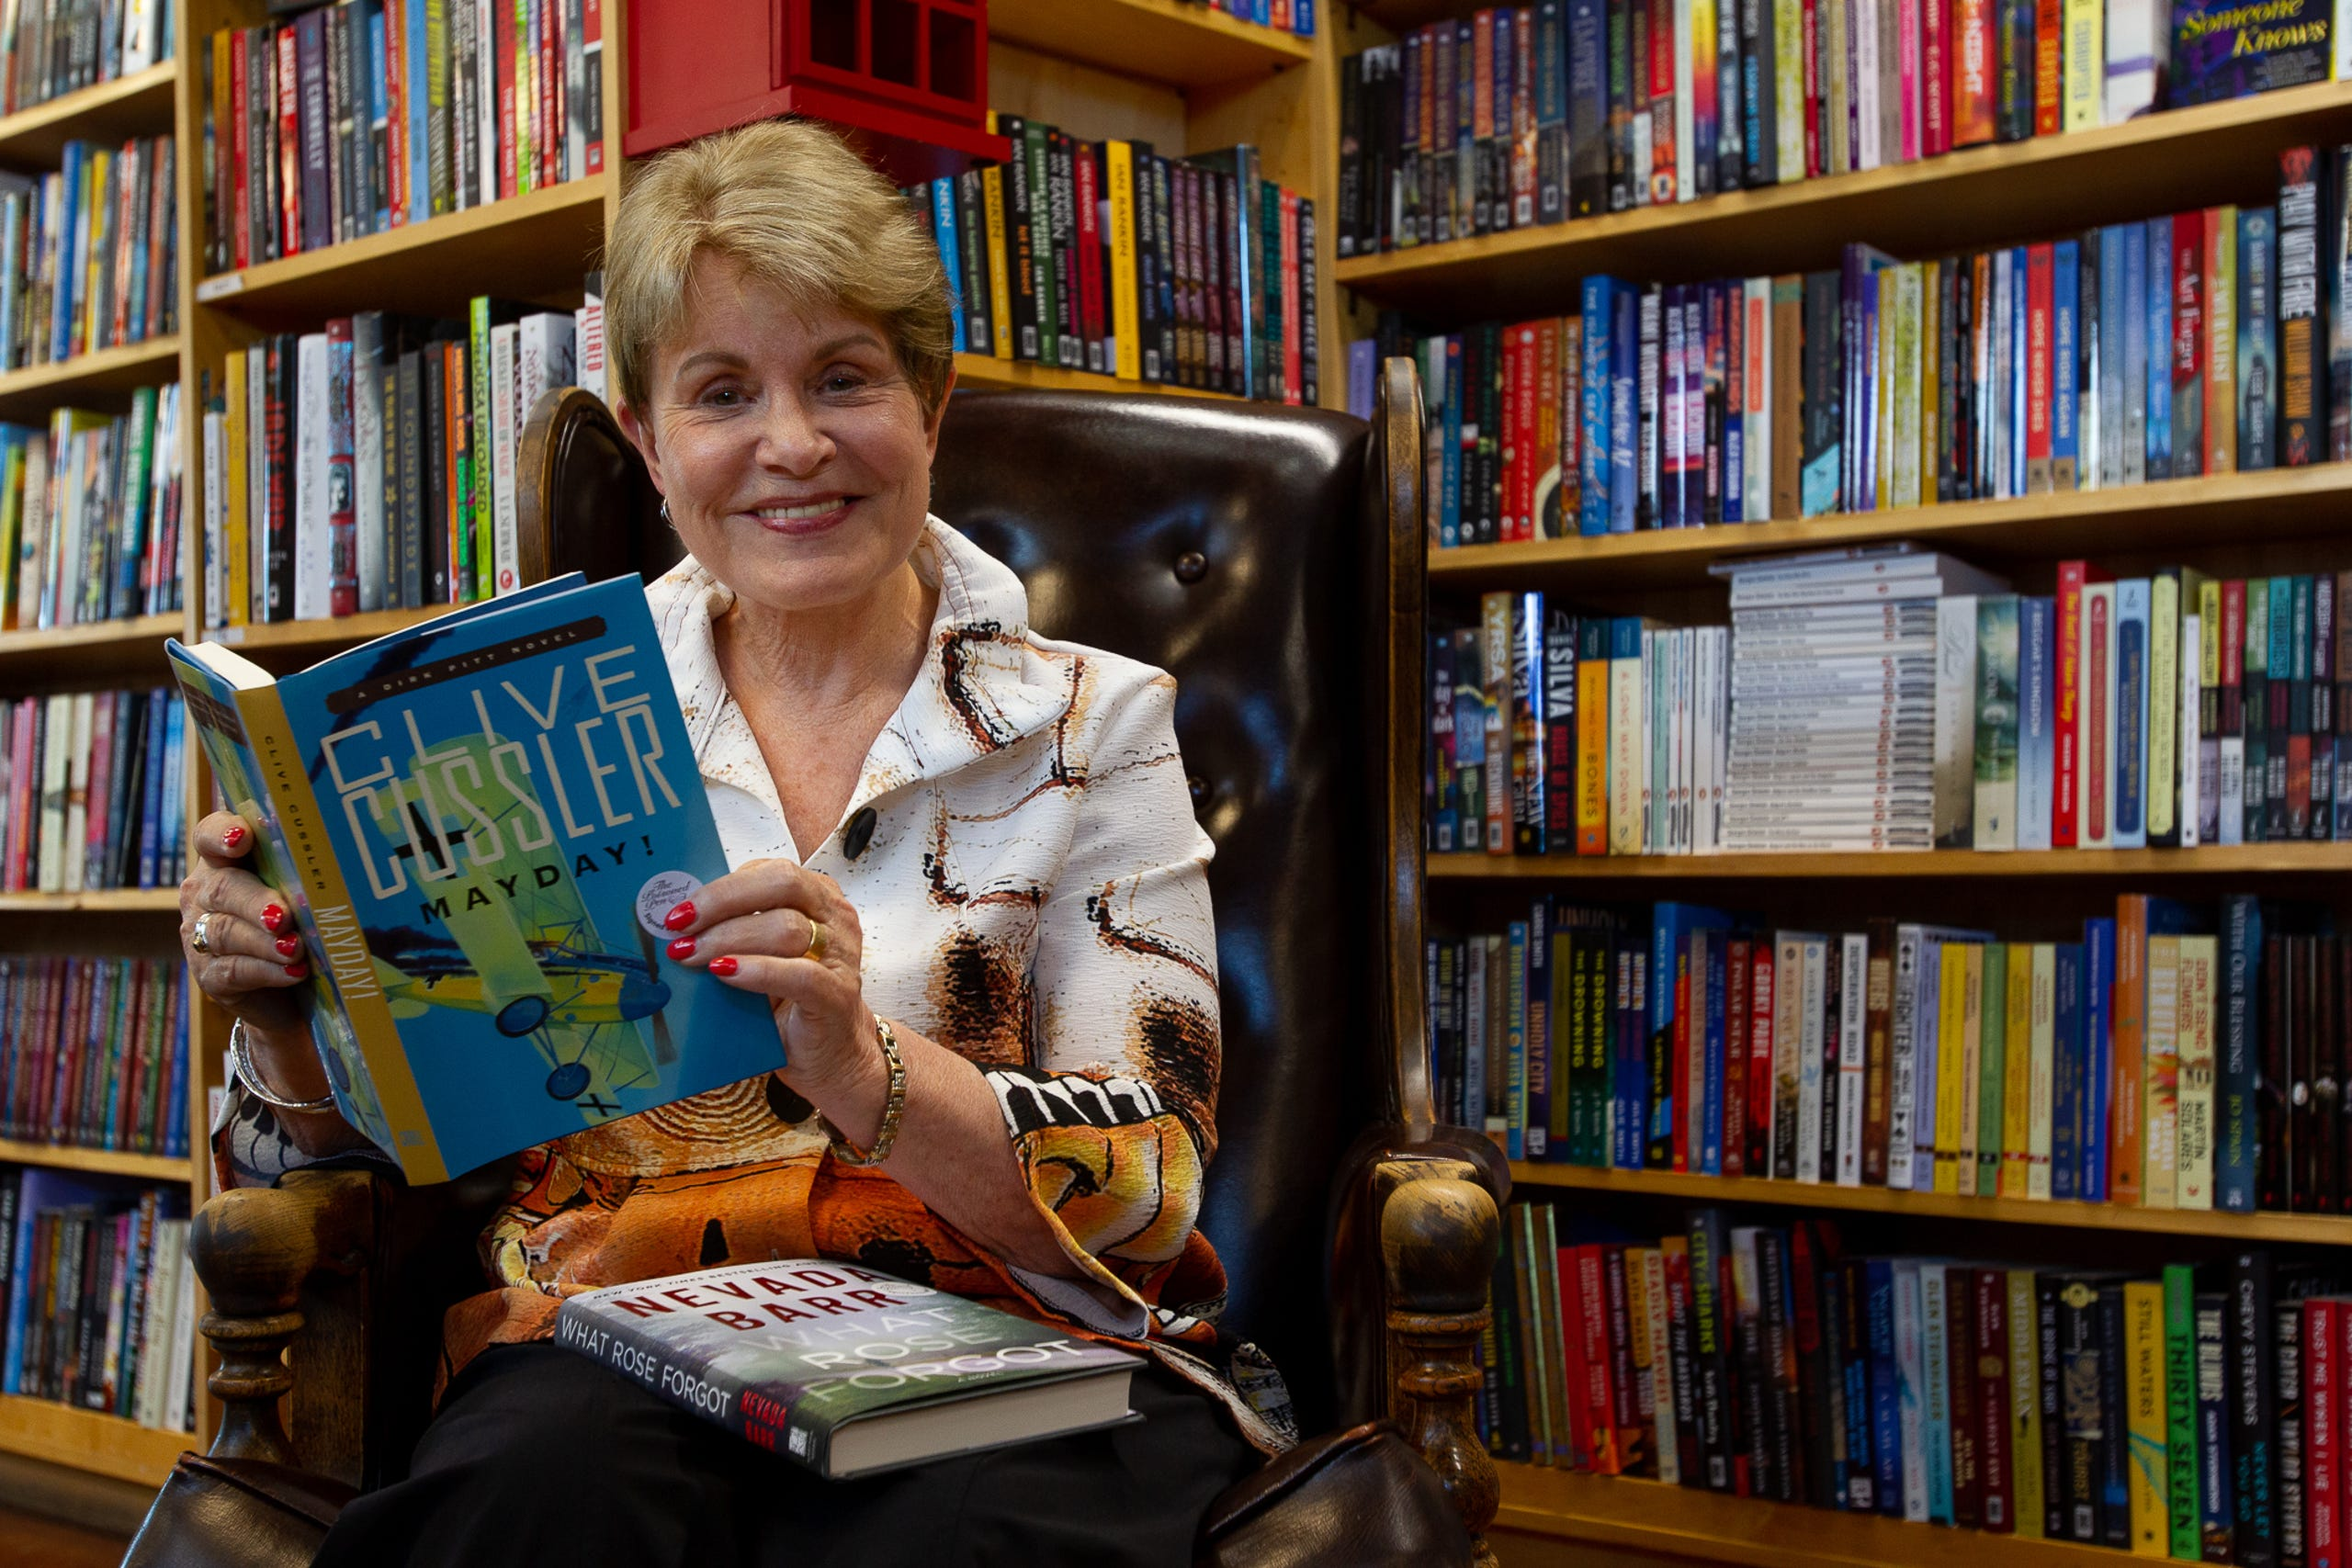 Barbara G. Peters started Poisoned Pen Bookstore 30 years ago.